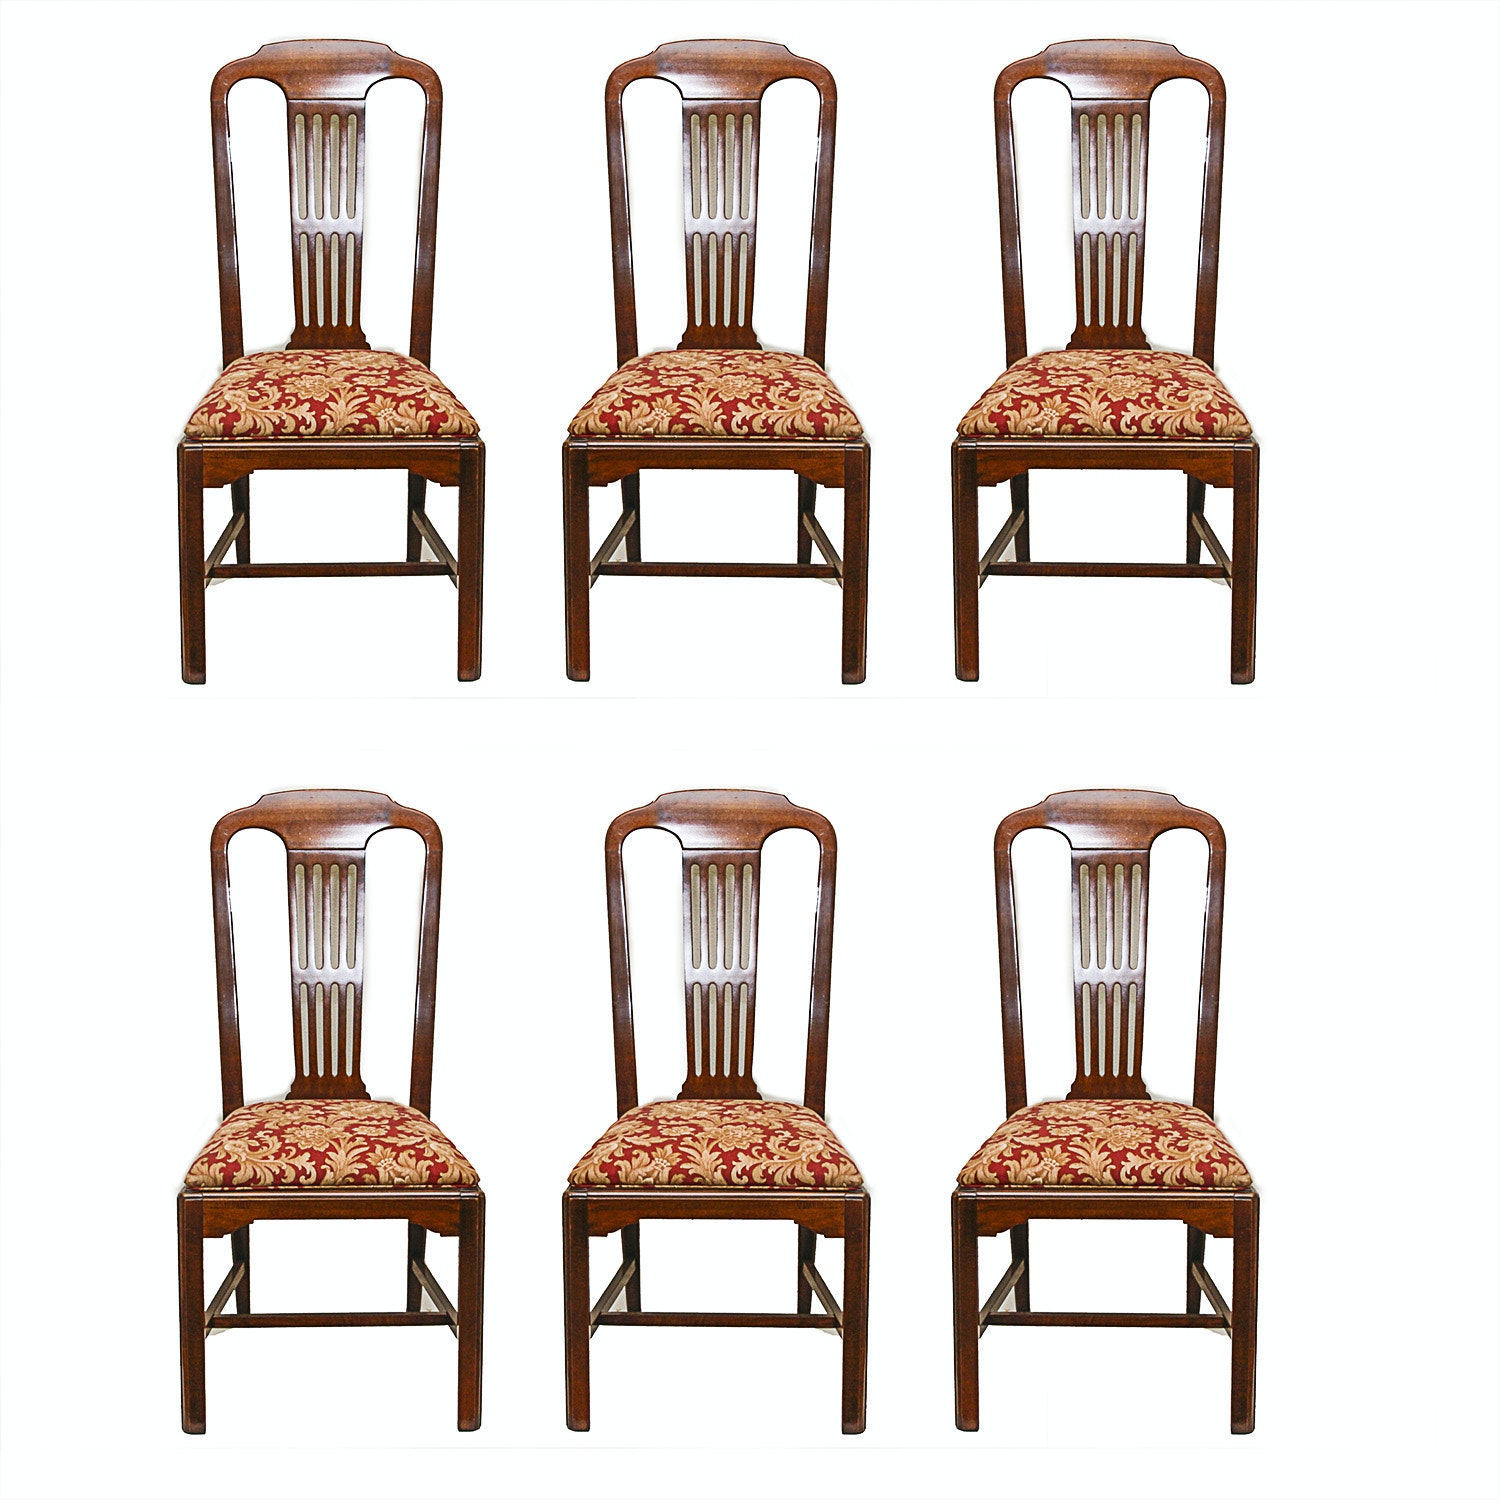 Six Wooden Dining Chairs